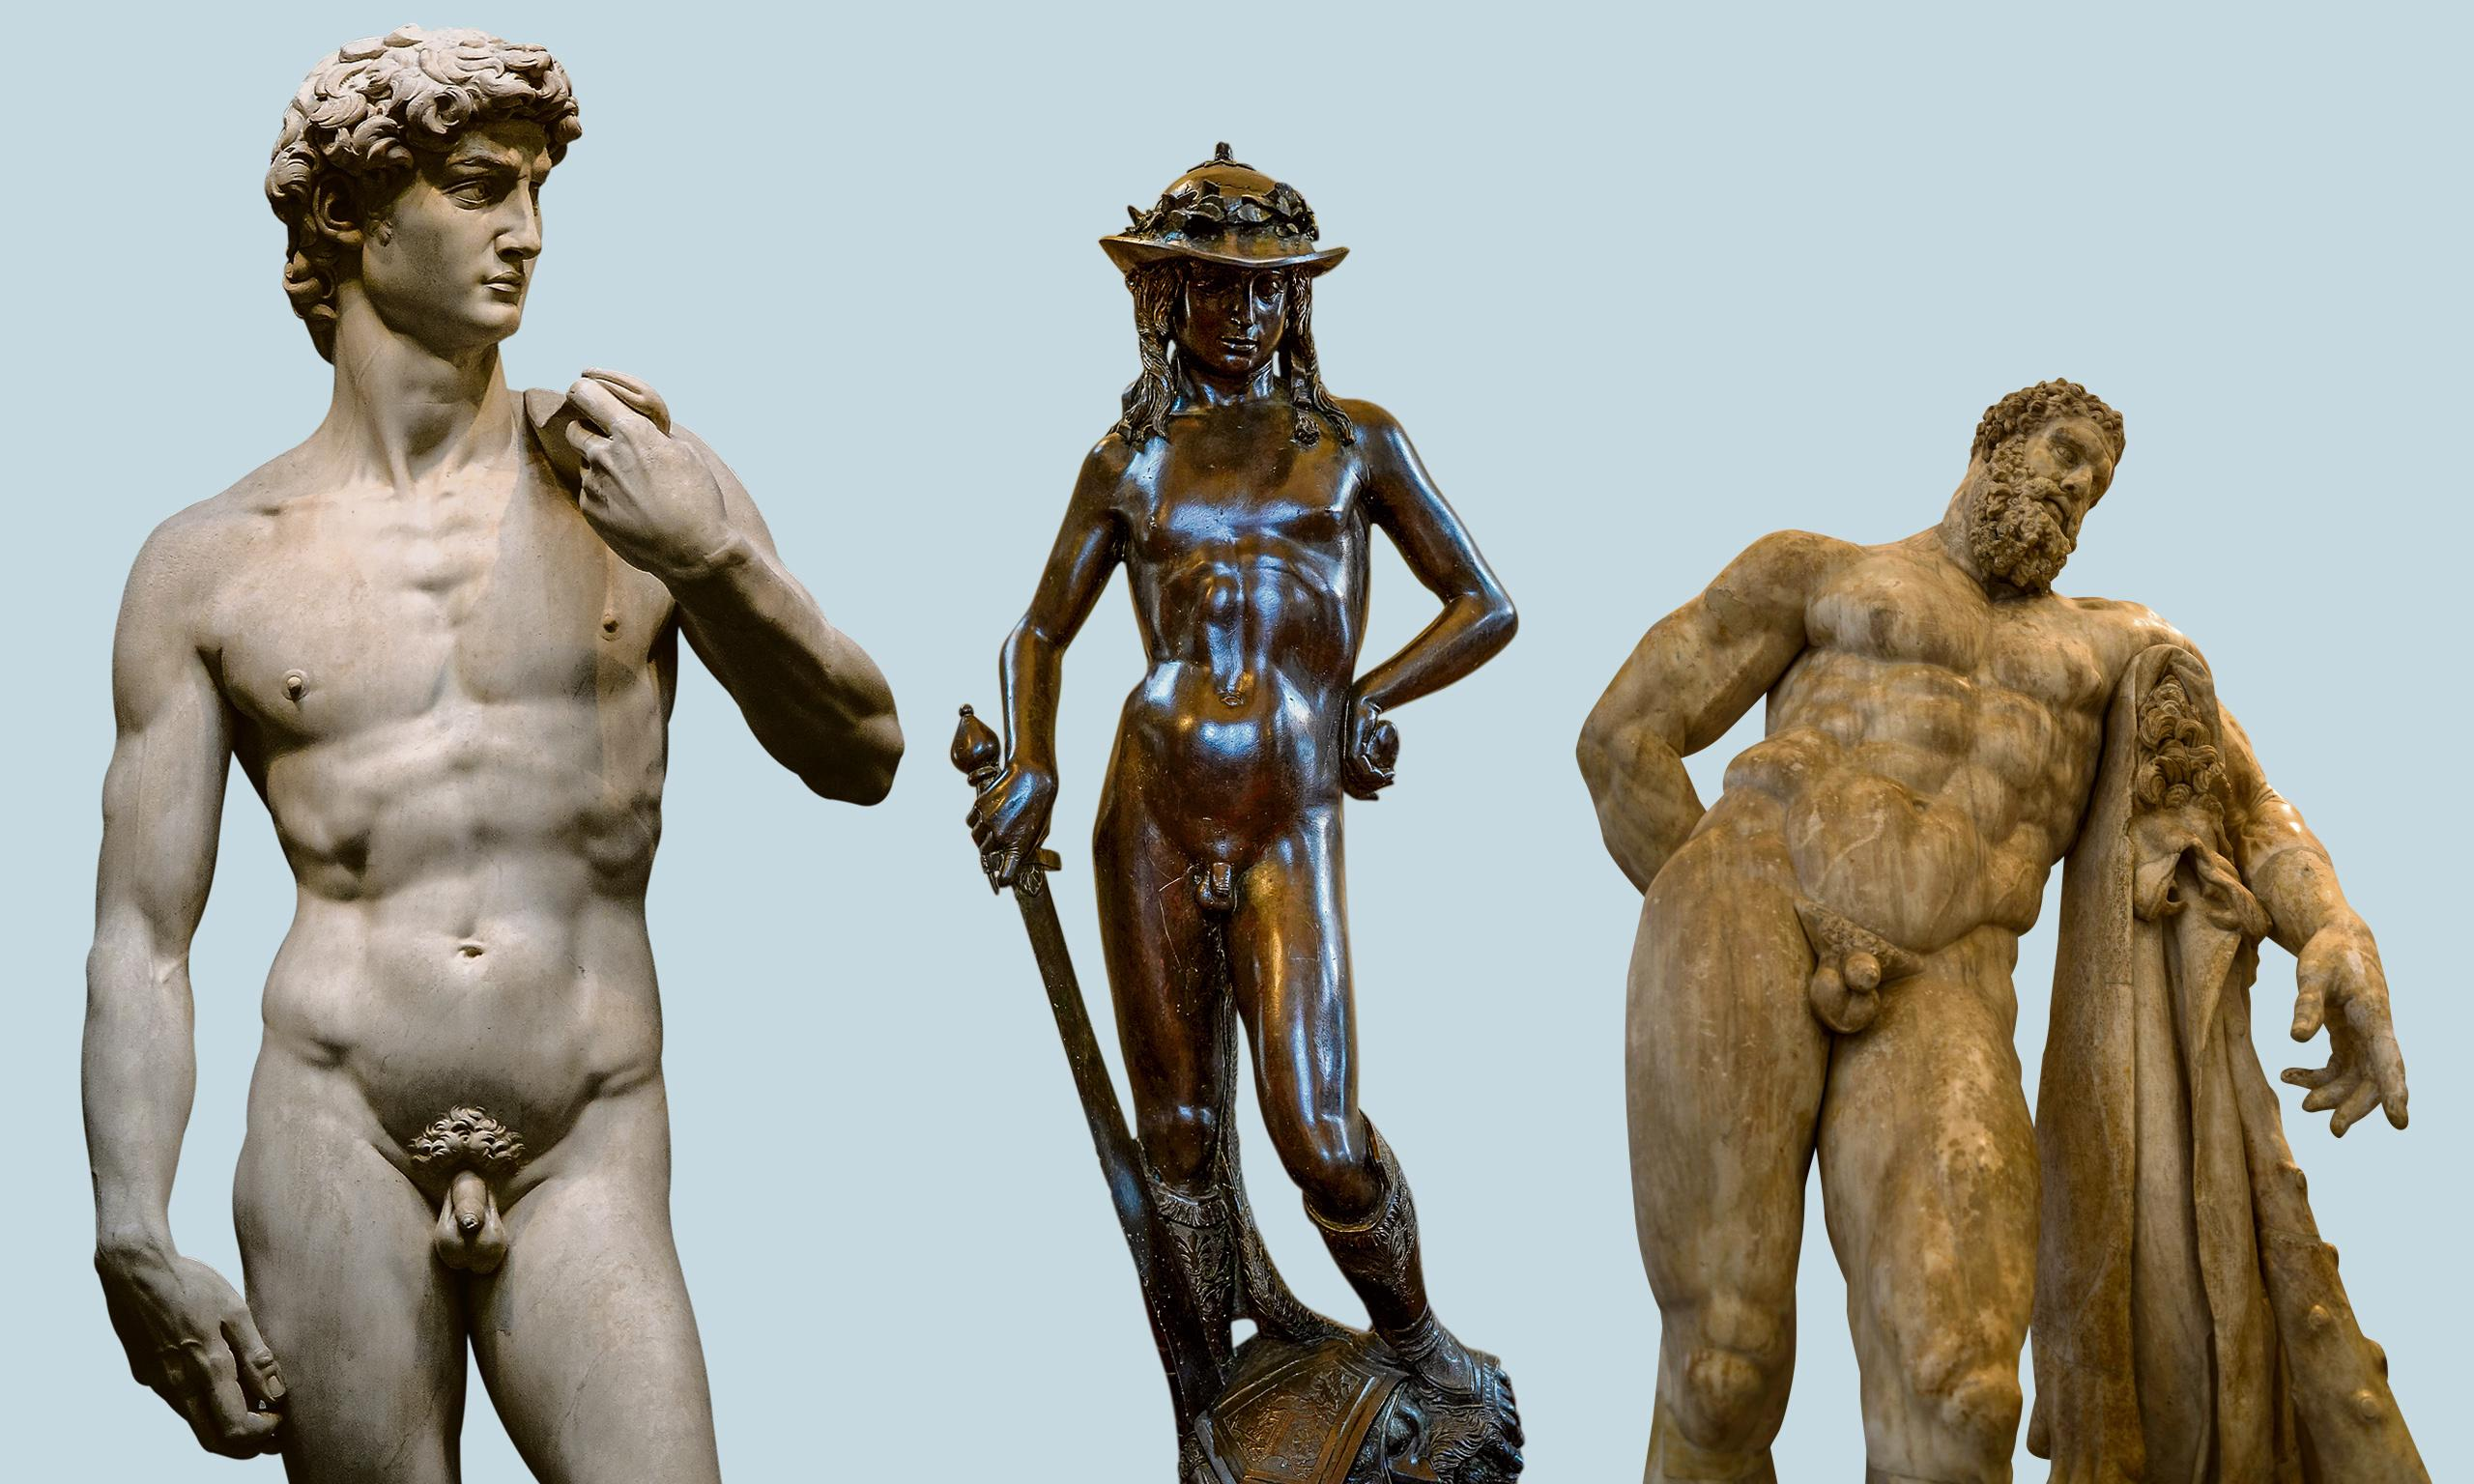 A naked triumph: why the male nude is – thankfully – back in the limelight